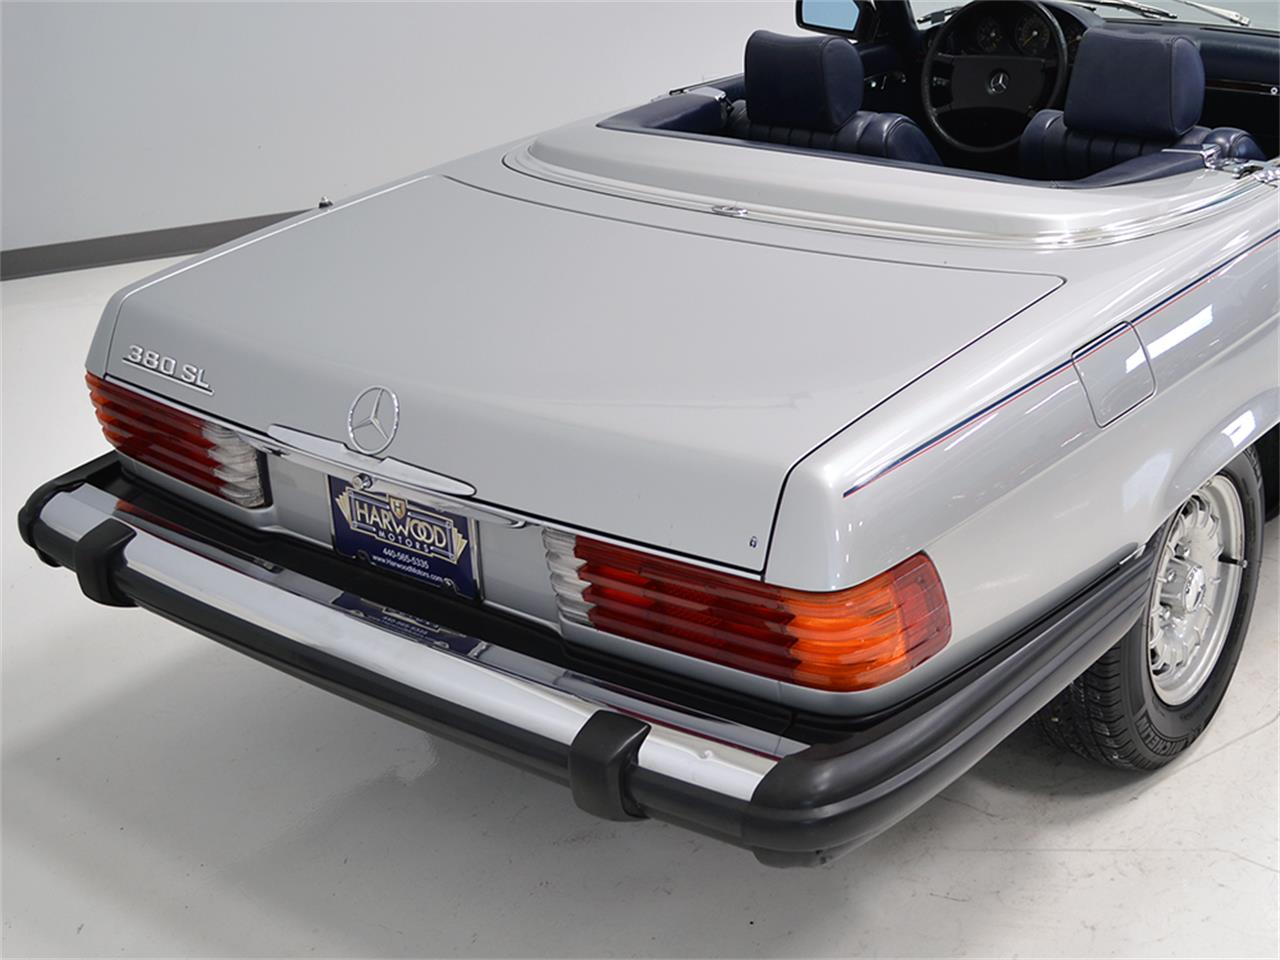 Large Picture of 1984 Mercedes-Benz 380SL located in Ohio - $17,900.00 Offered by Harwood Motors, LTD. - KA2F